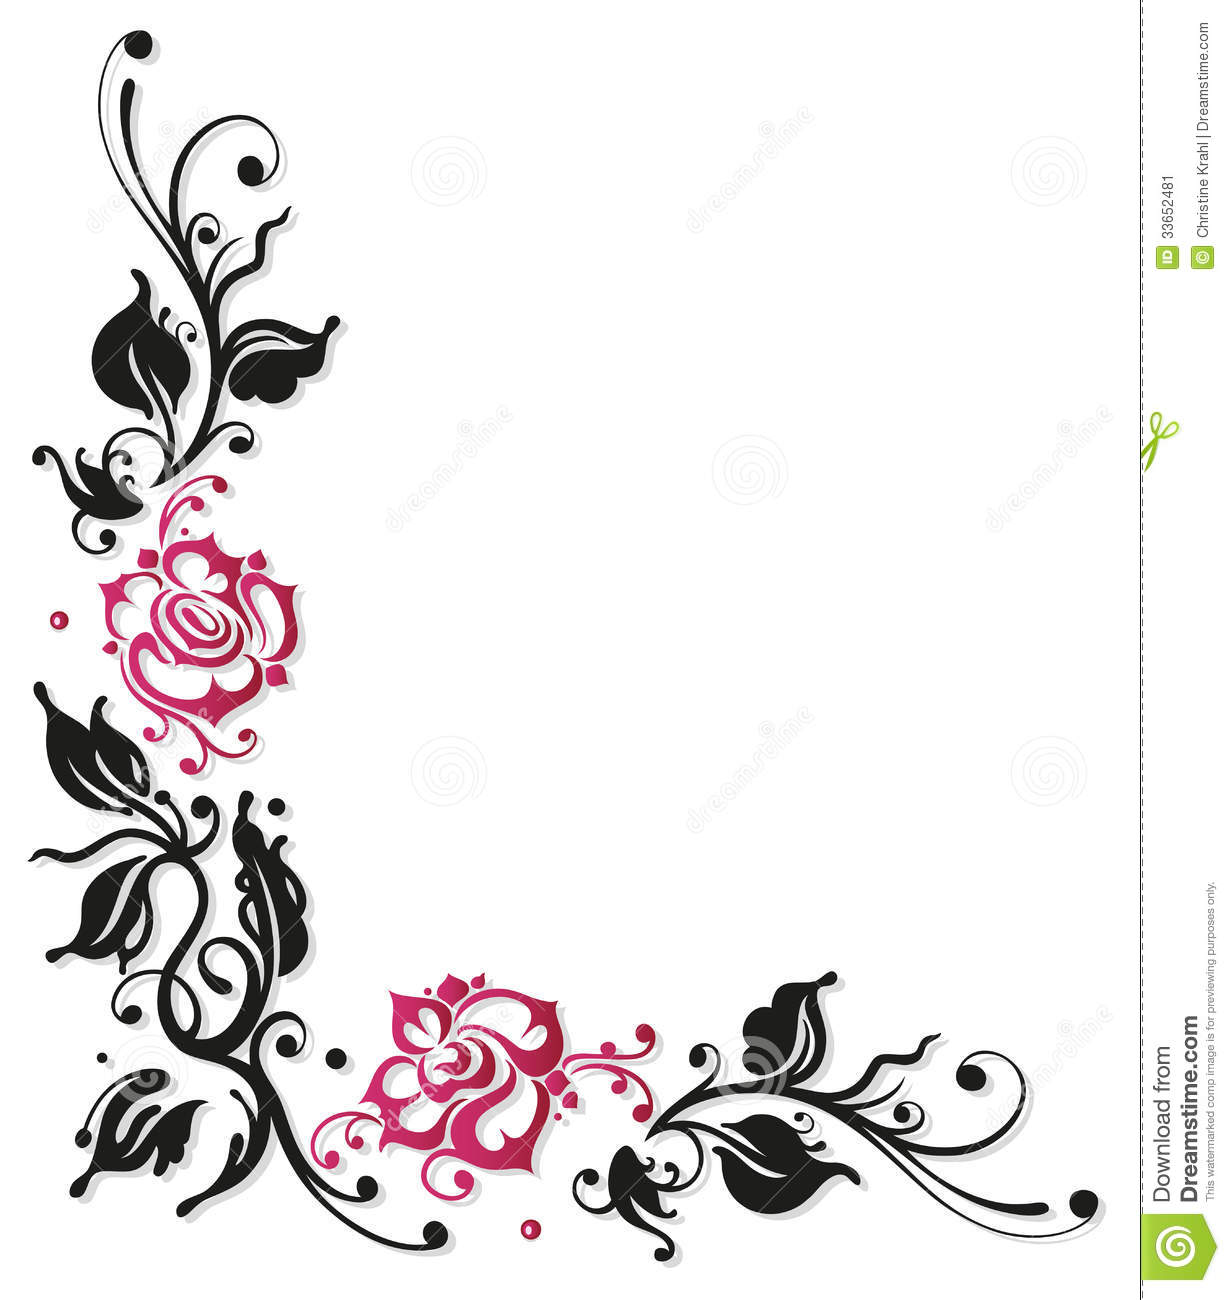 Border Design Black And White Clipart | Free download on ...